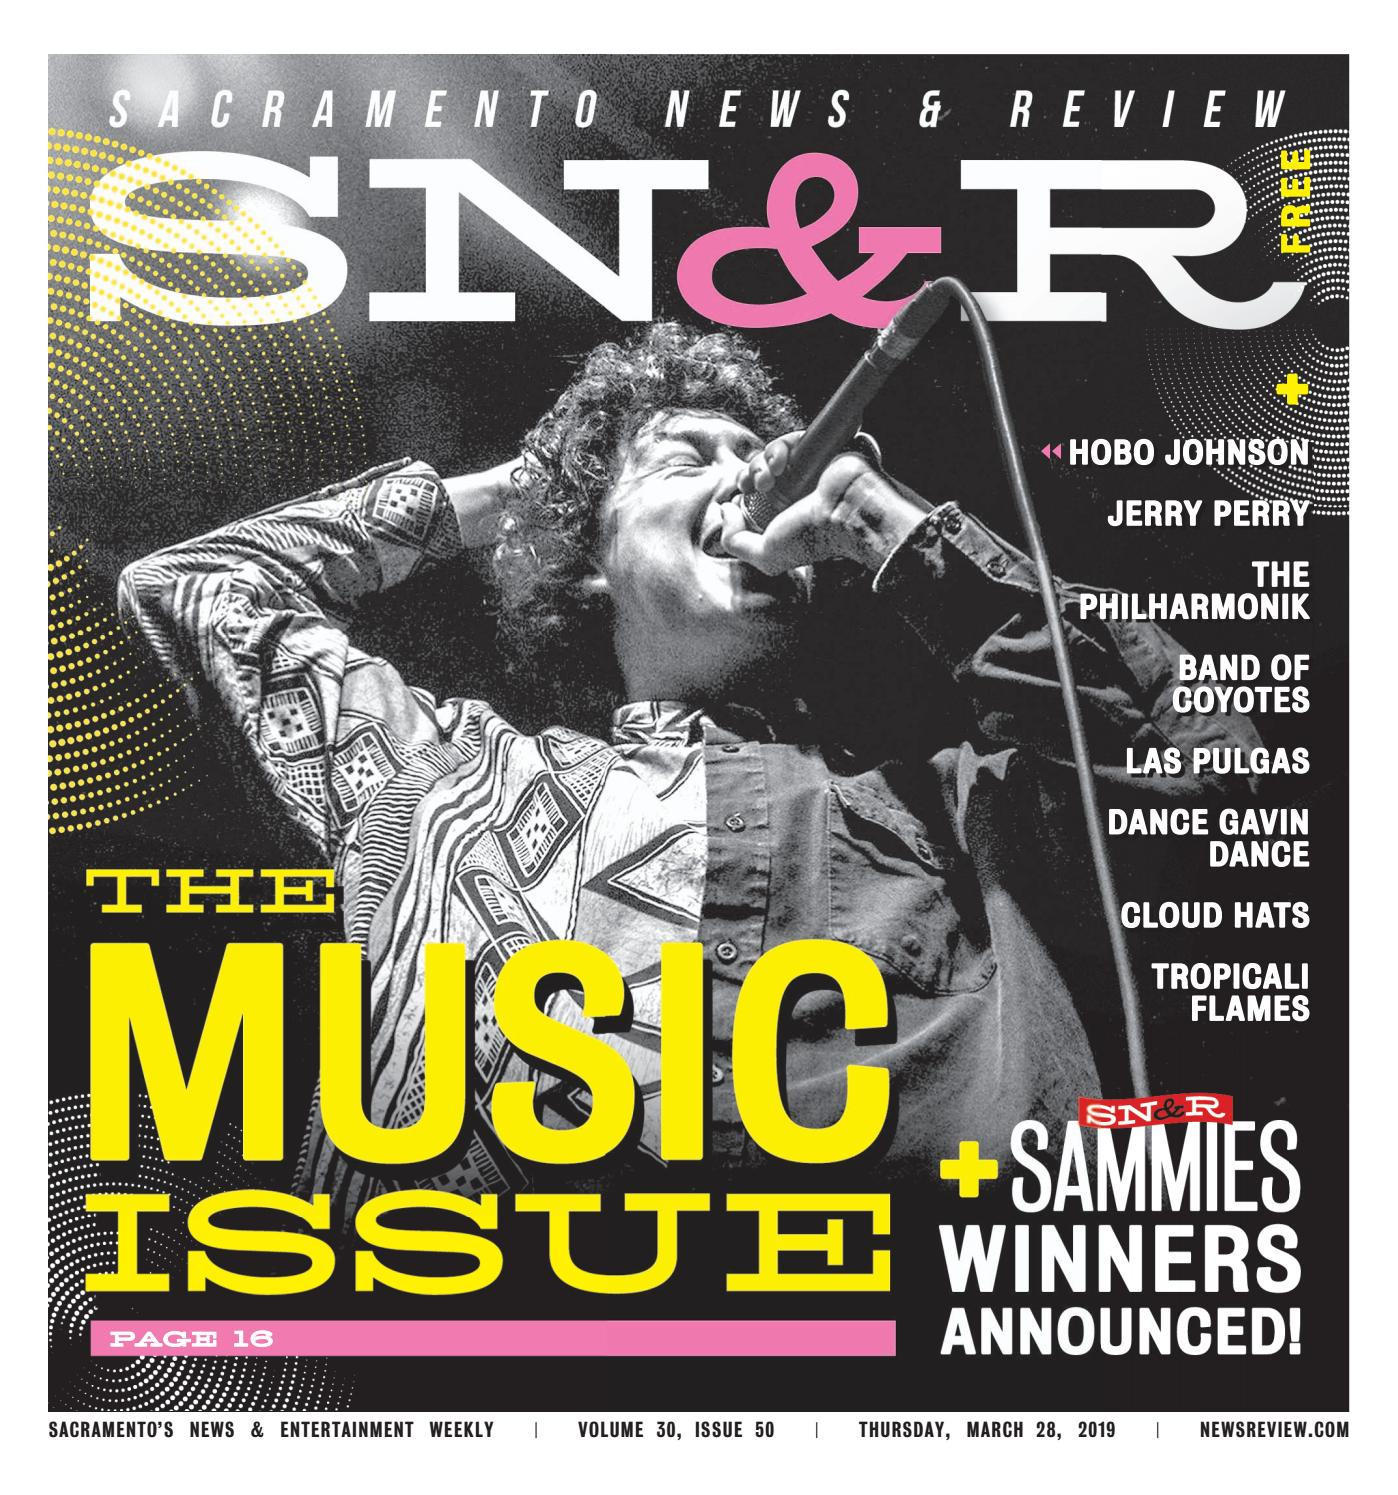 s-2019-03-28 by News & Review - issuu